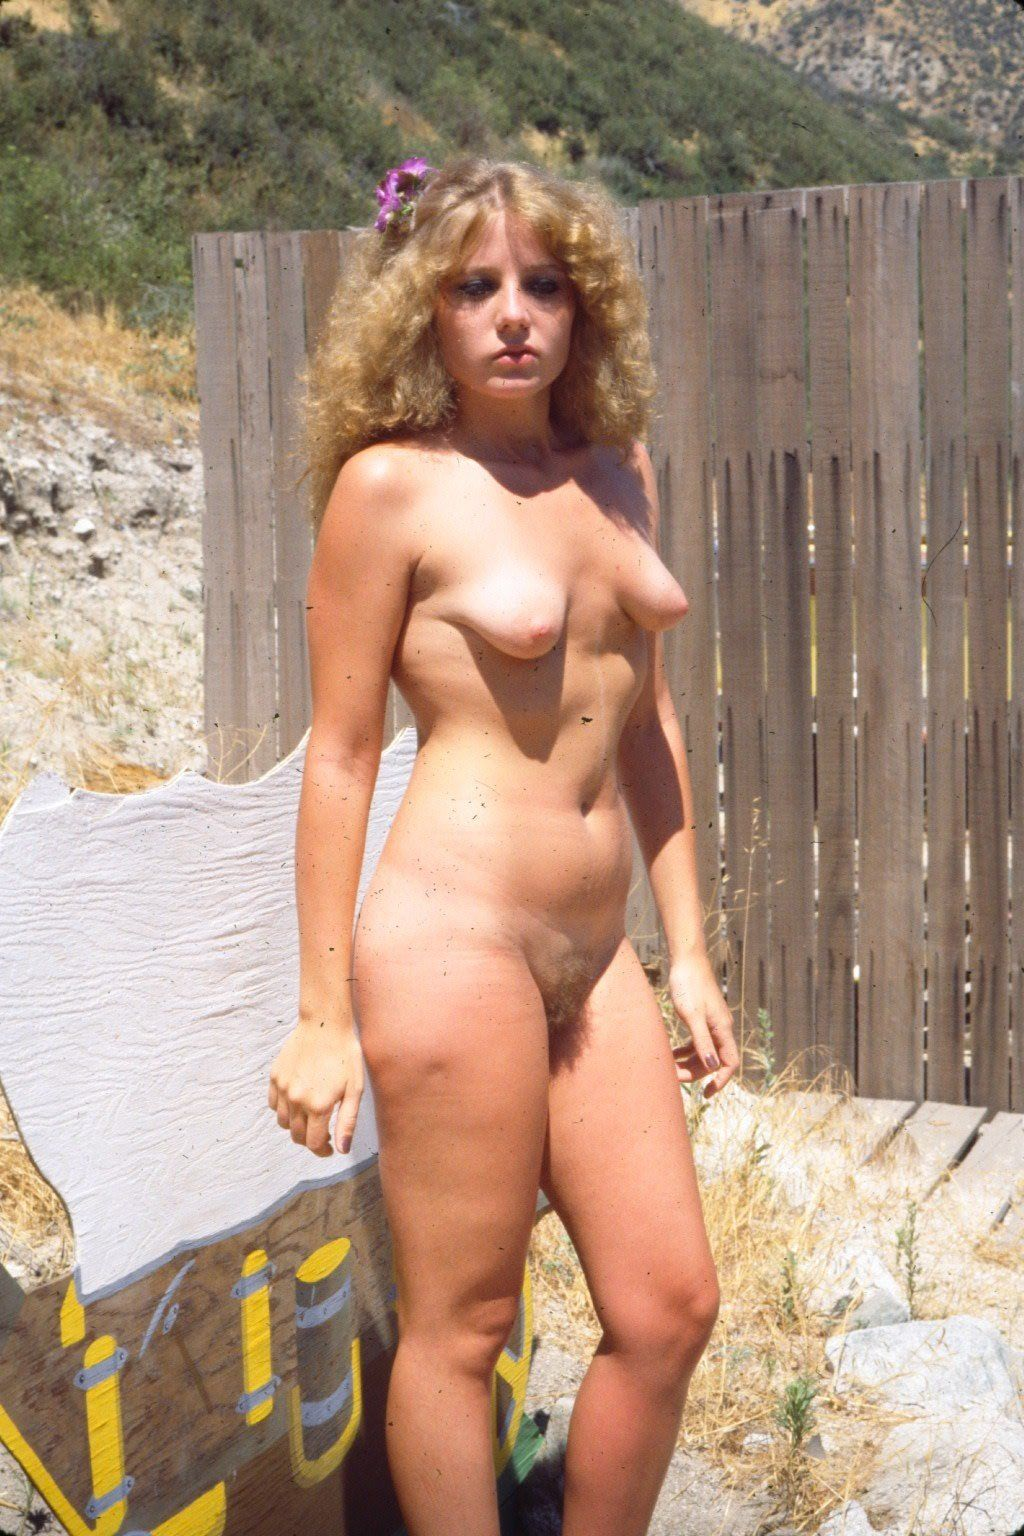 Seems me, Classic nudist galleries Goes!